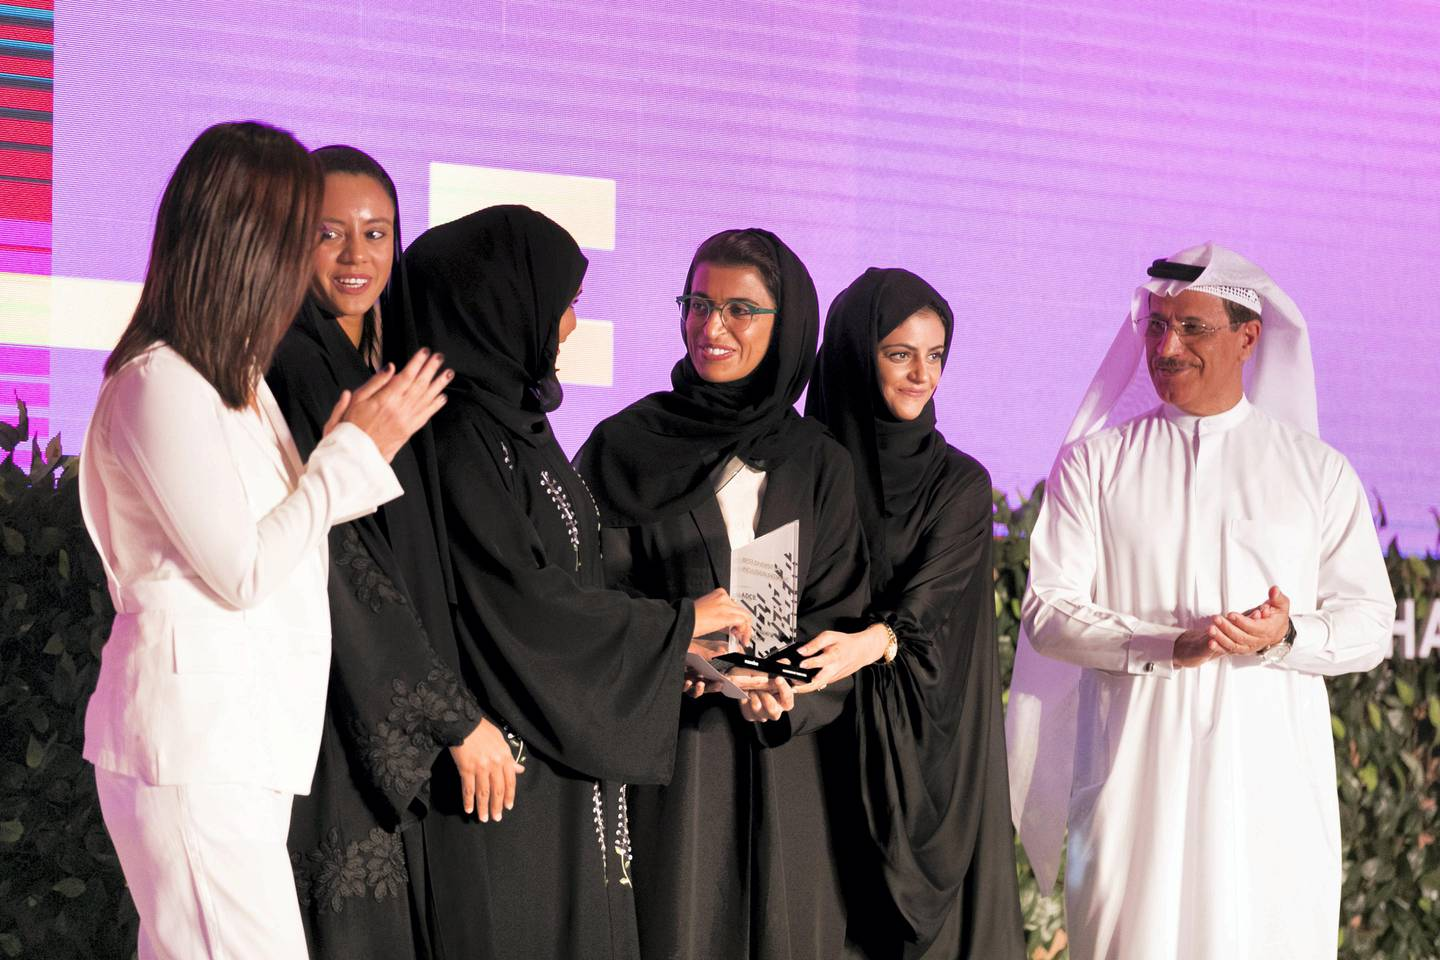 DUBAI, UNITED ARAB EMIRATES - OCT 25:  H.E. Sultan bin Saeed Al Mansouri, right, Ministry of Economy for the United Arab Emirates, and H.E. Noura Al Kaabi, second to right, Minister of State for Federal National Council Affairs, and Sophie Le Ray, left, CEO, Naseba  Founder, present the Best D&I Initiative award to ADCB at the Global WIL Economic Forum    Endorsed by the UAE Ministry of Economy for the past four years, Naseba Global WIL Economic Forum is bringing together up to 500 global business leaders, policy-makers, entrepreneurs, NGOs, artists and youth to champion diversity as the cornerstone of sustainable economic development.    (Photo by Reem Mohammed/The National)  Reporter: Suzanne Locke and Alice Haine Section: BZ